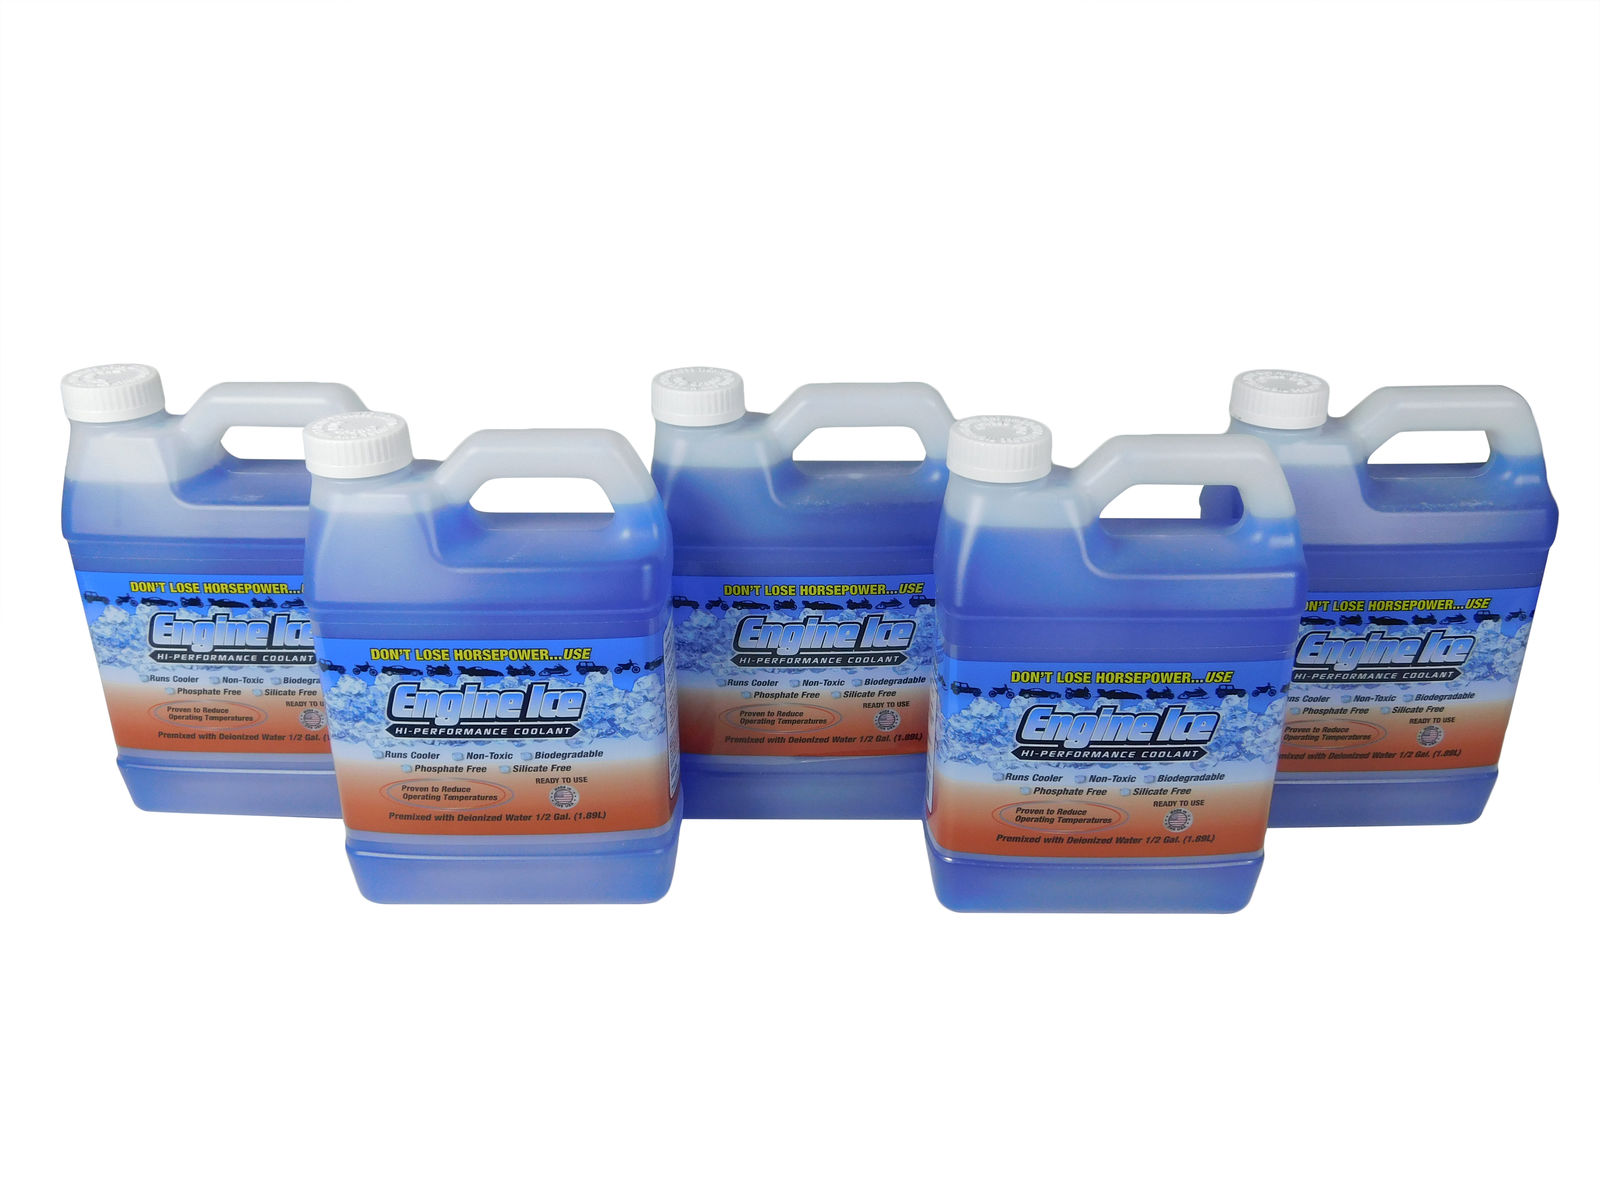 Engine-Ice-TYDS008-03-High-Performance-Coolant-0.5-gallon-5-Pack-image-1